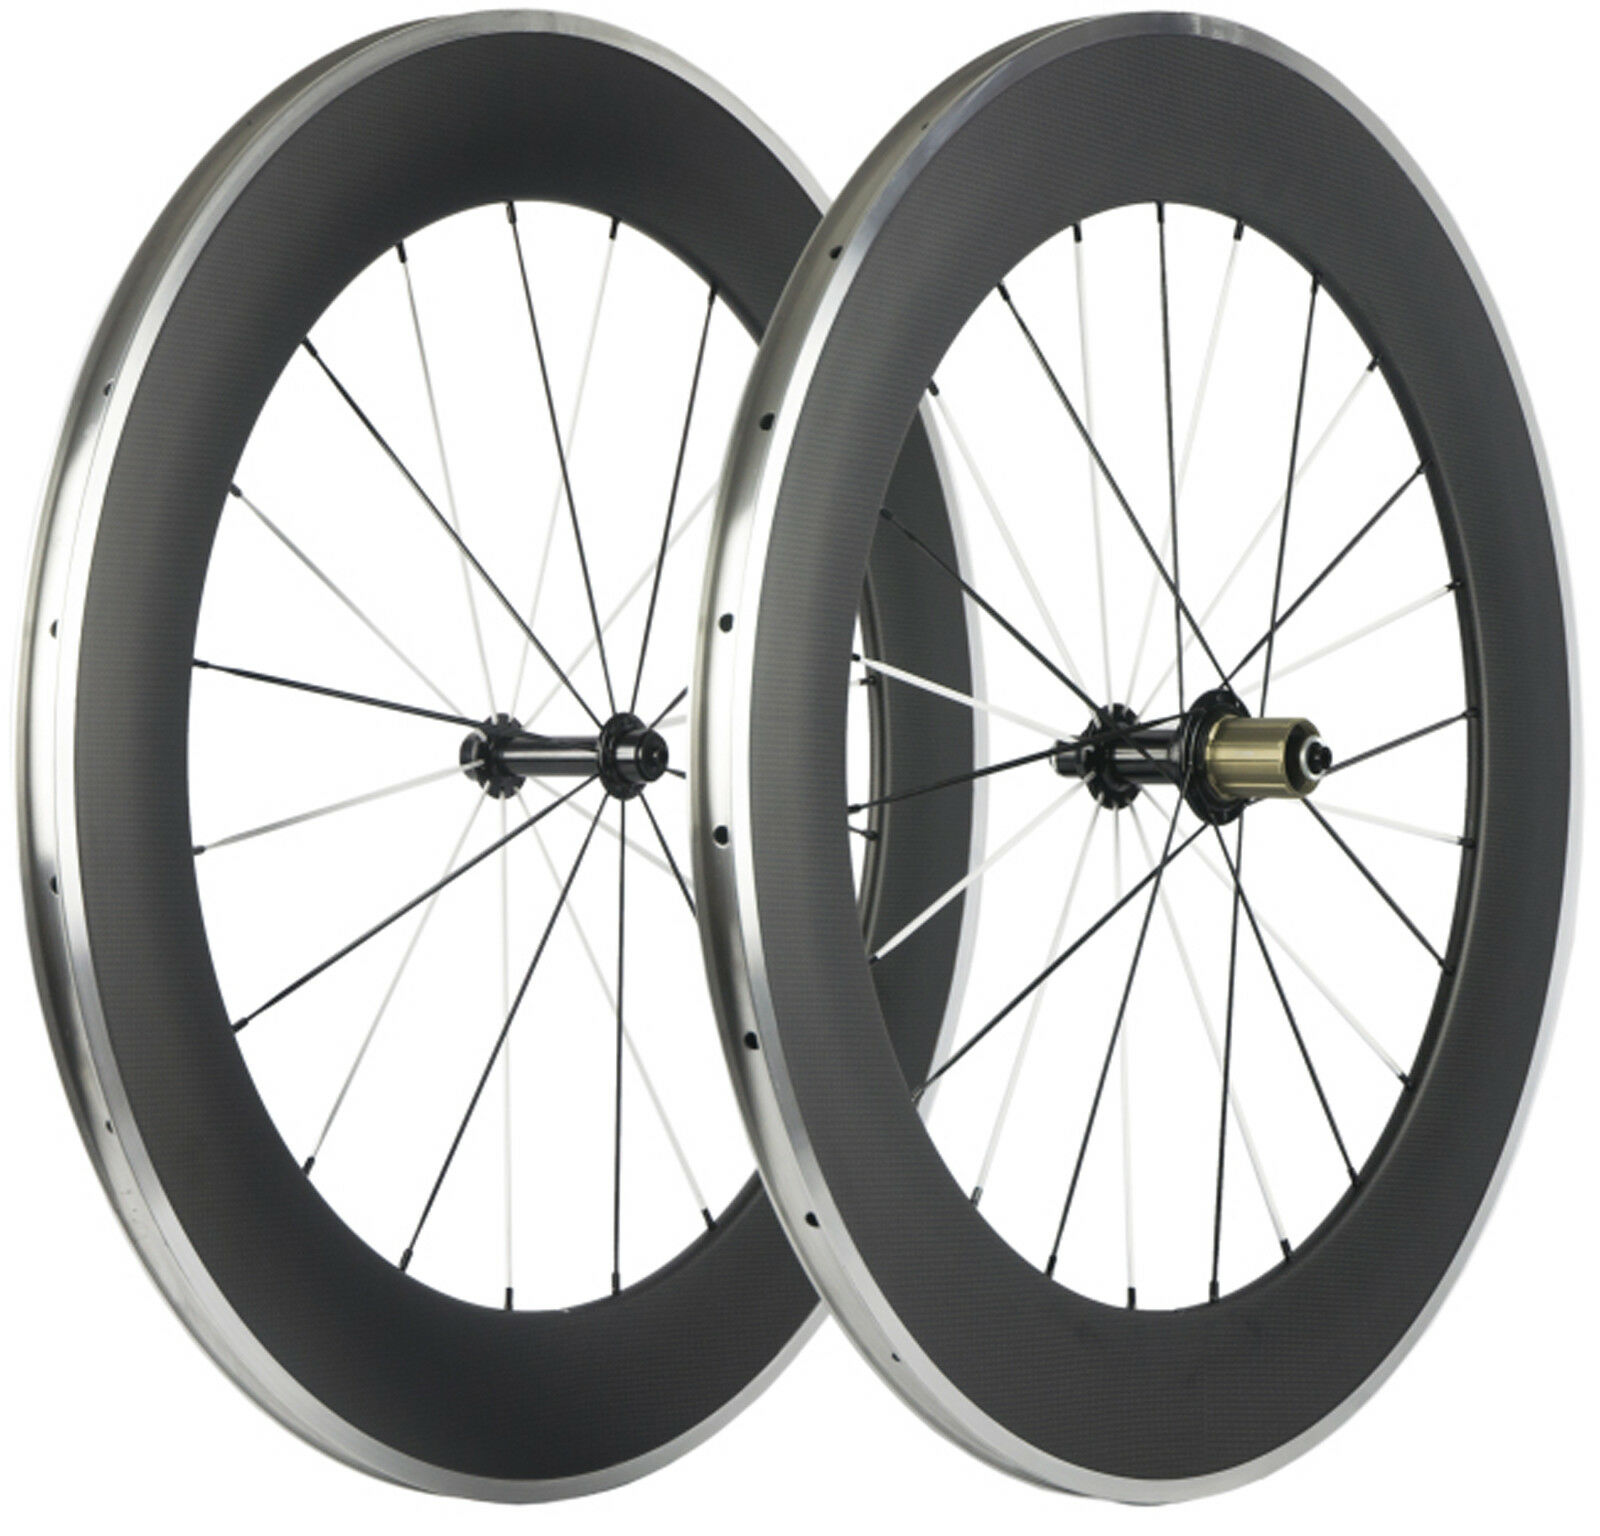 80mm  Clincher Bicycle Wheels Road Bike Cycle Wheelset 700C Aluminum Brake Line  check out the cheapest